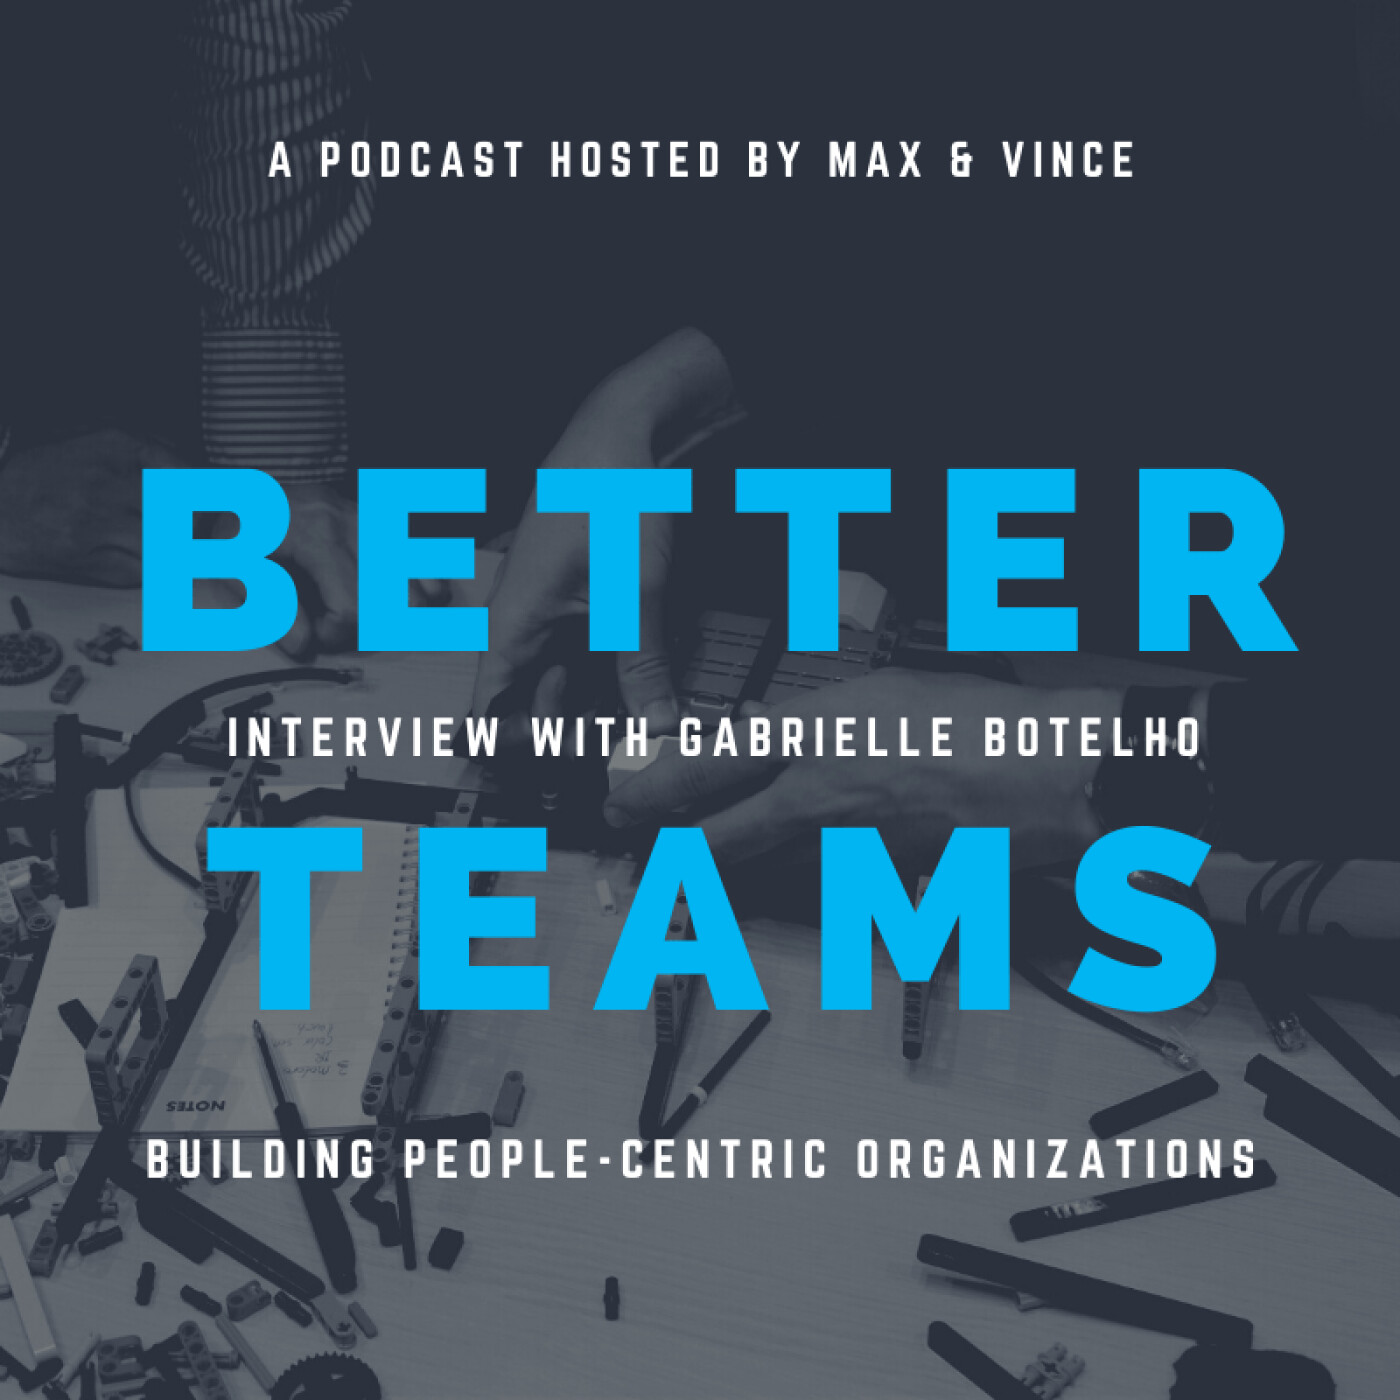 Building People-Centric Organizations - Interview with Gabrielle Botelho